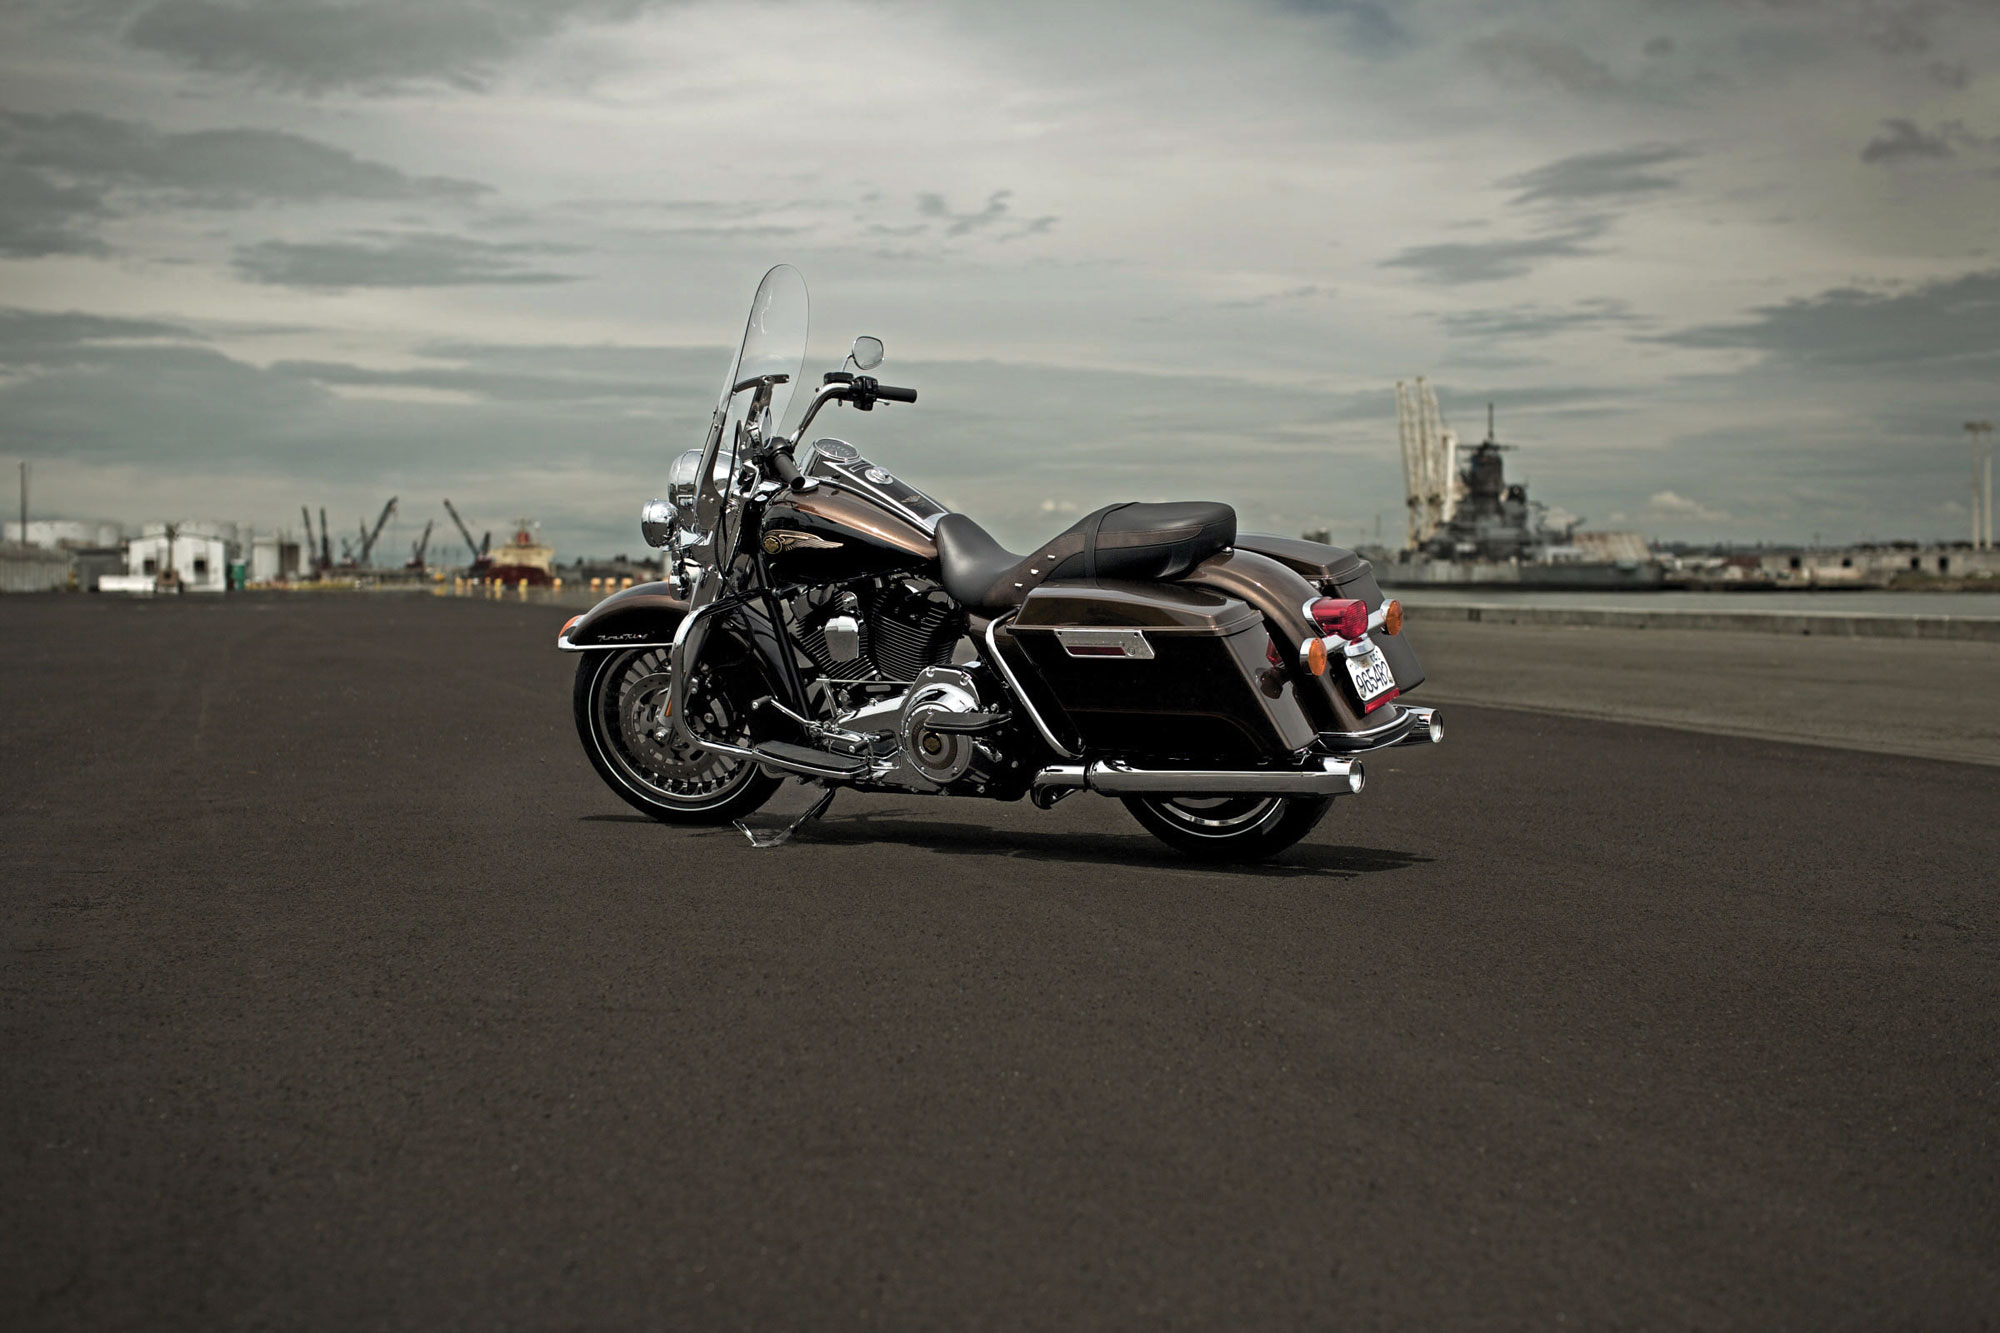 Harley-Davidson FLHR Road King 110th Anniversary 2013 images #81569